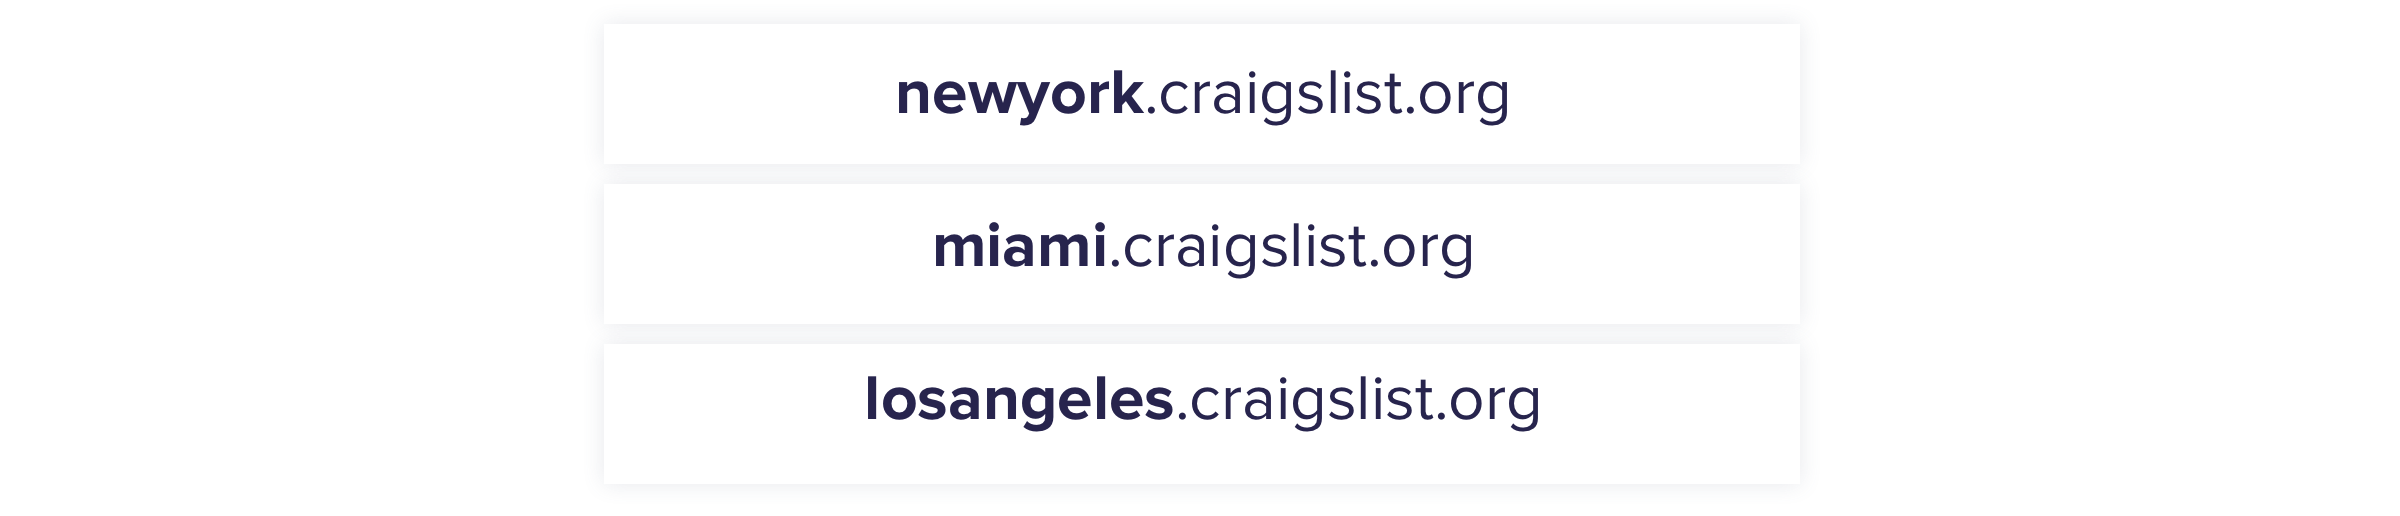 Craigslist city subdomains